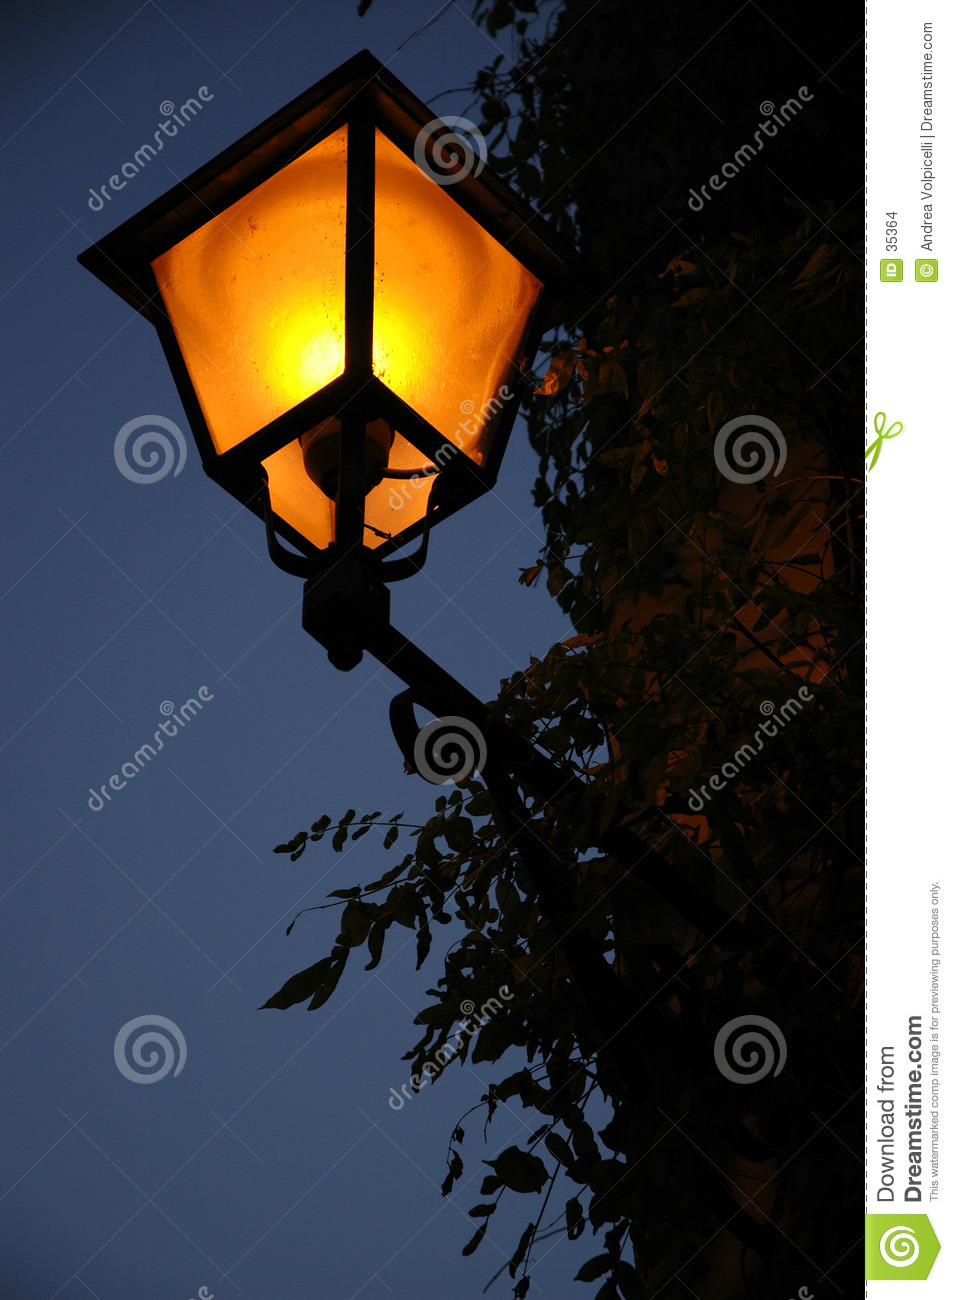 Another lamppost